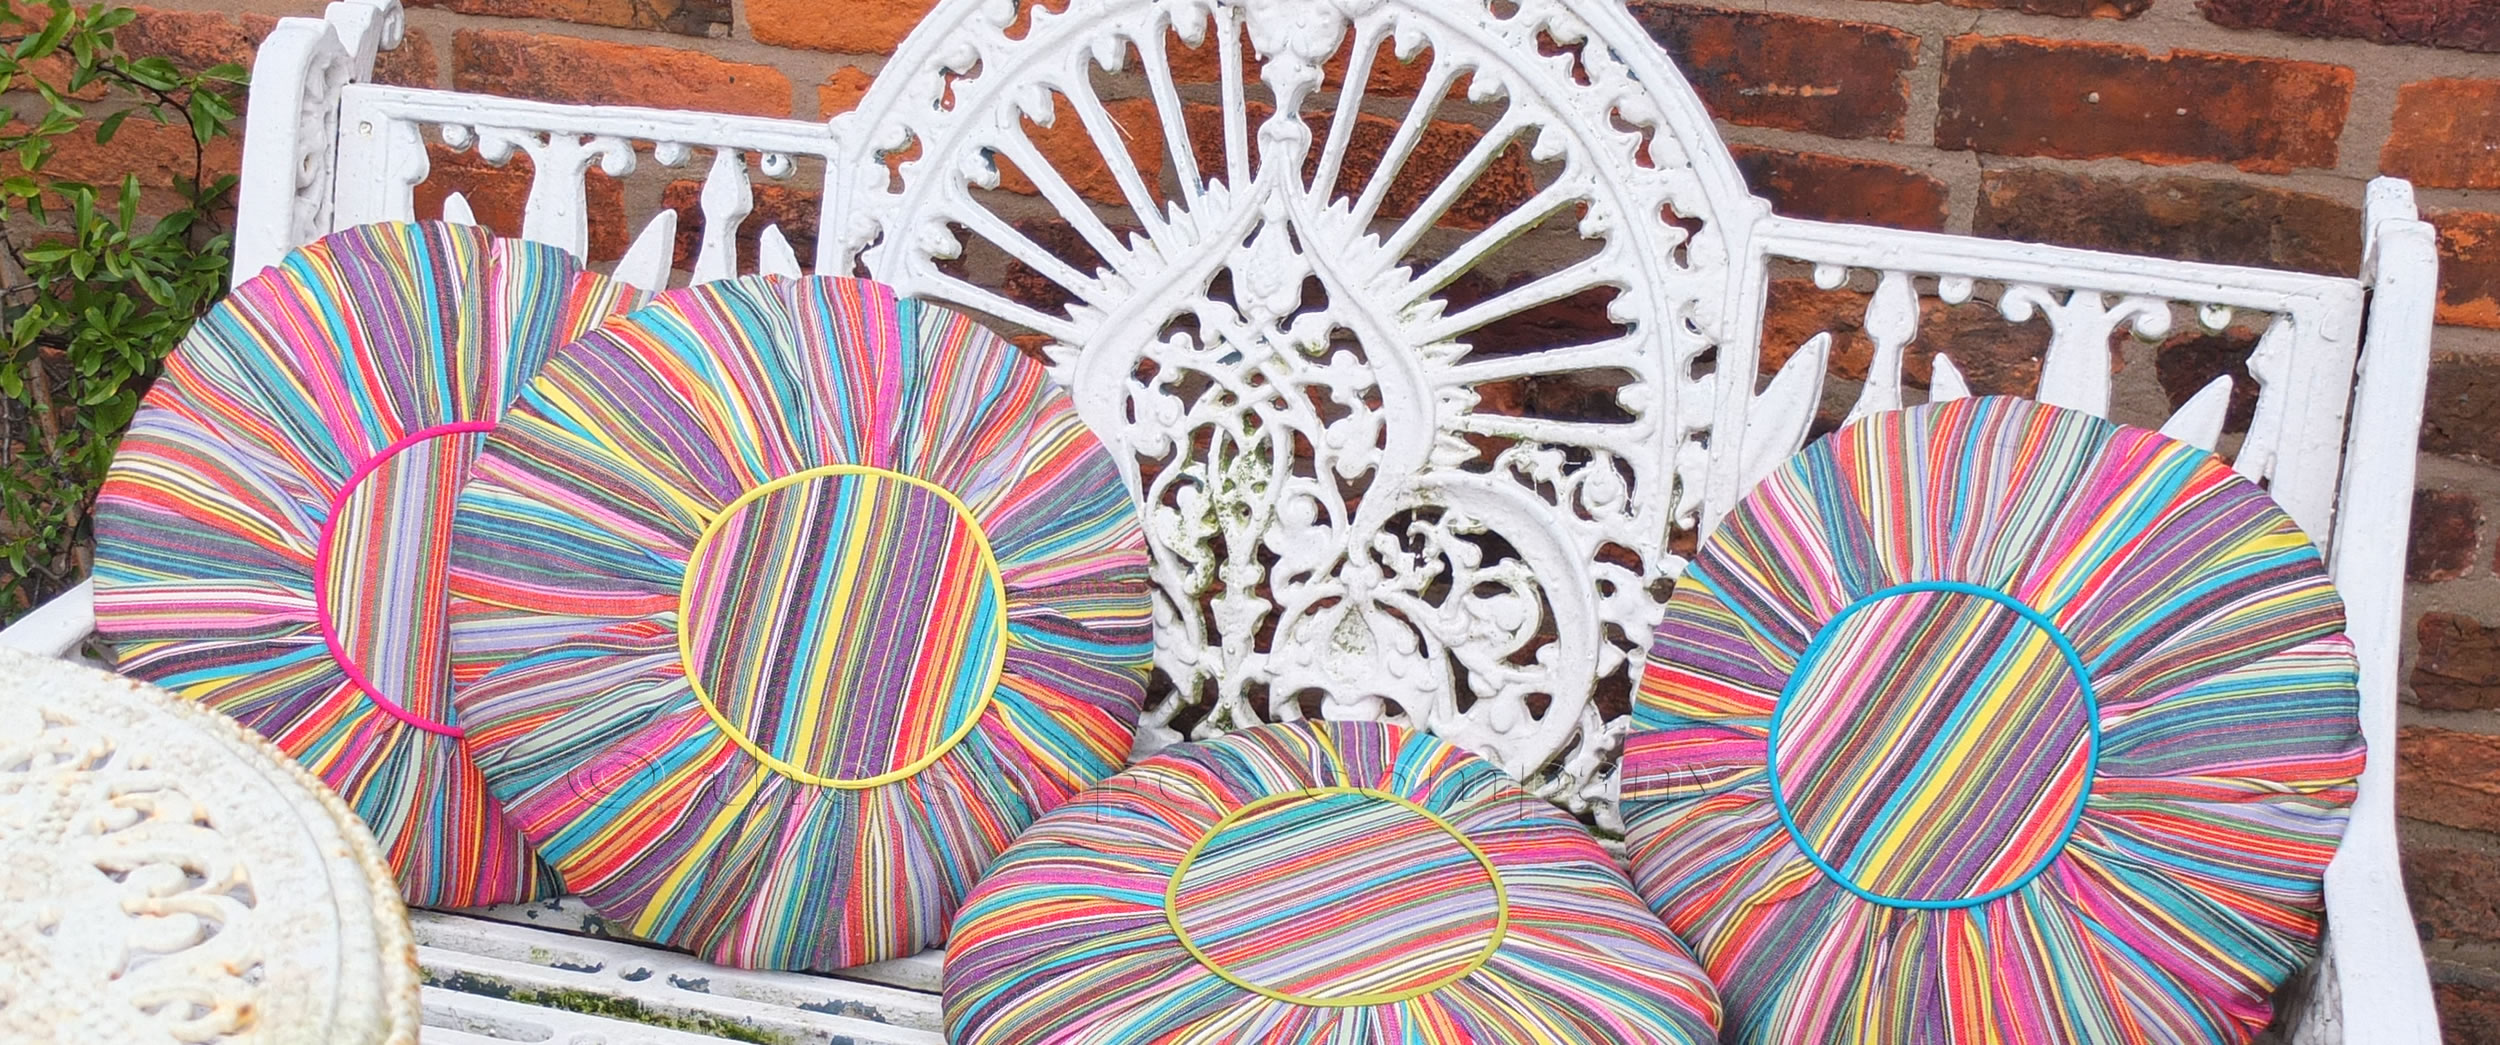 Striped Round Cushions | Round Gathered Cushion